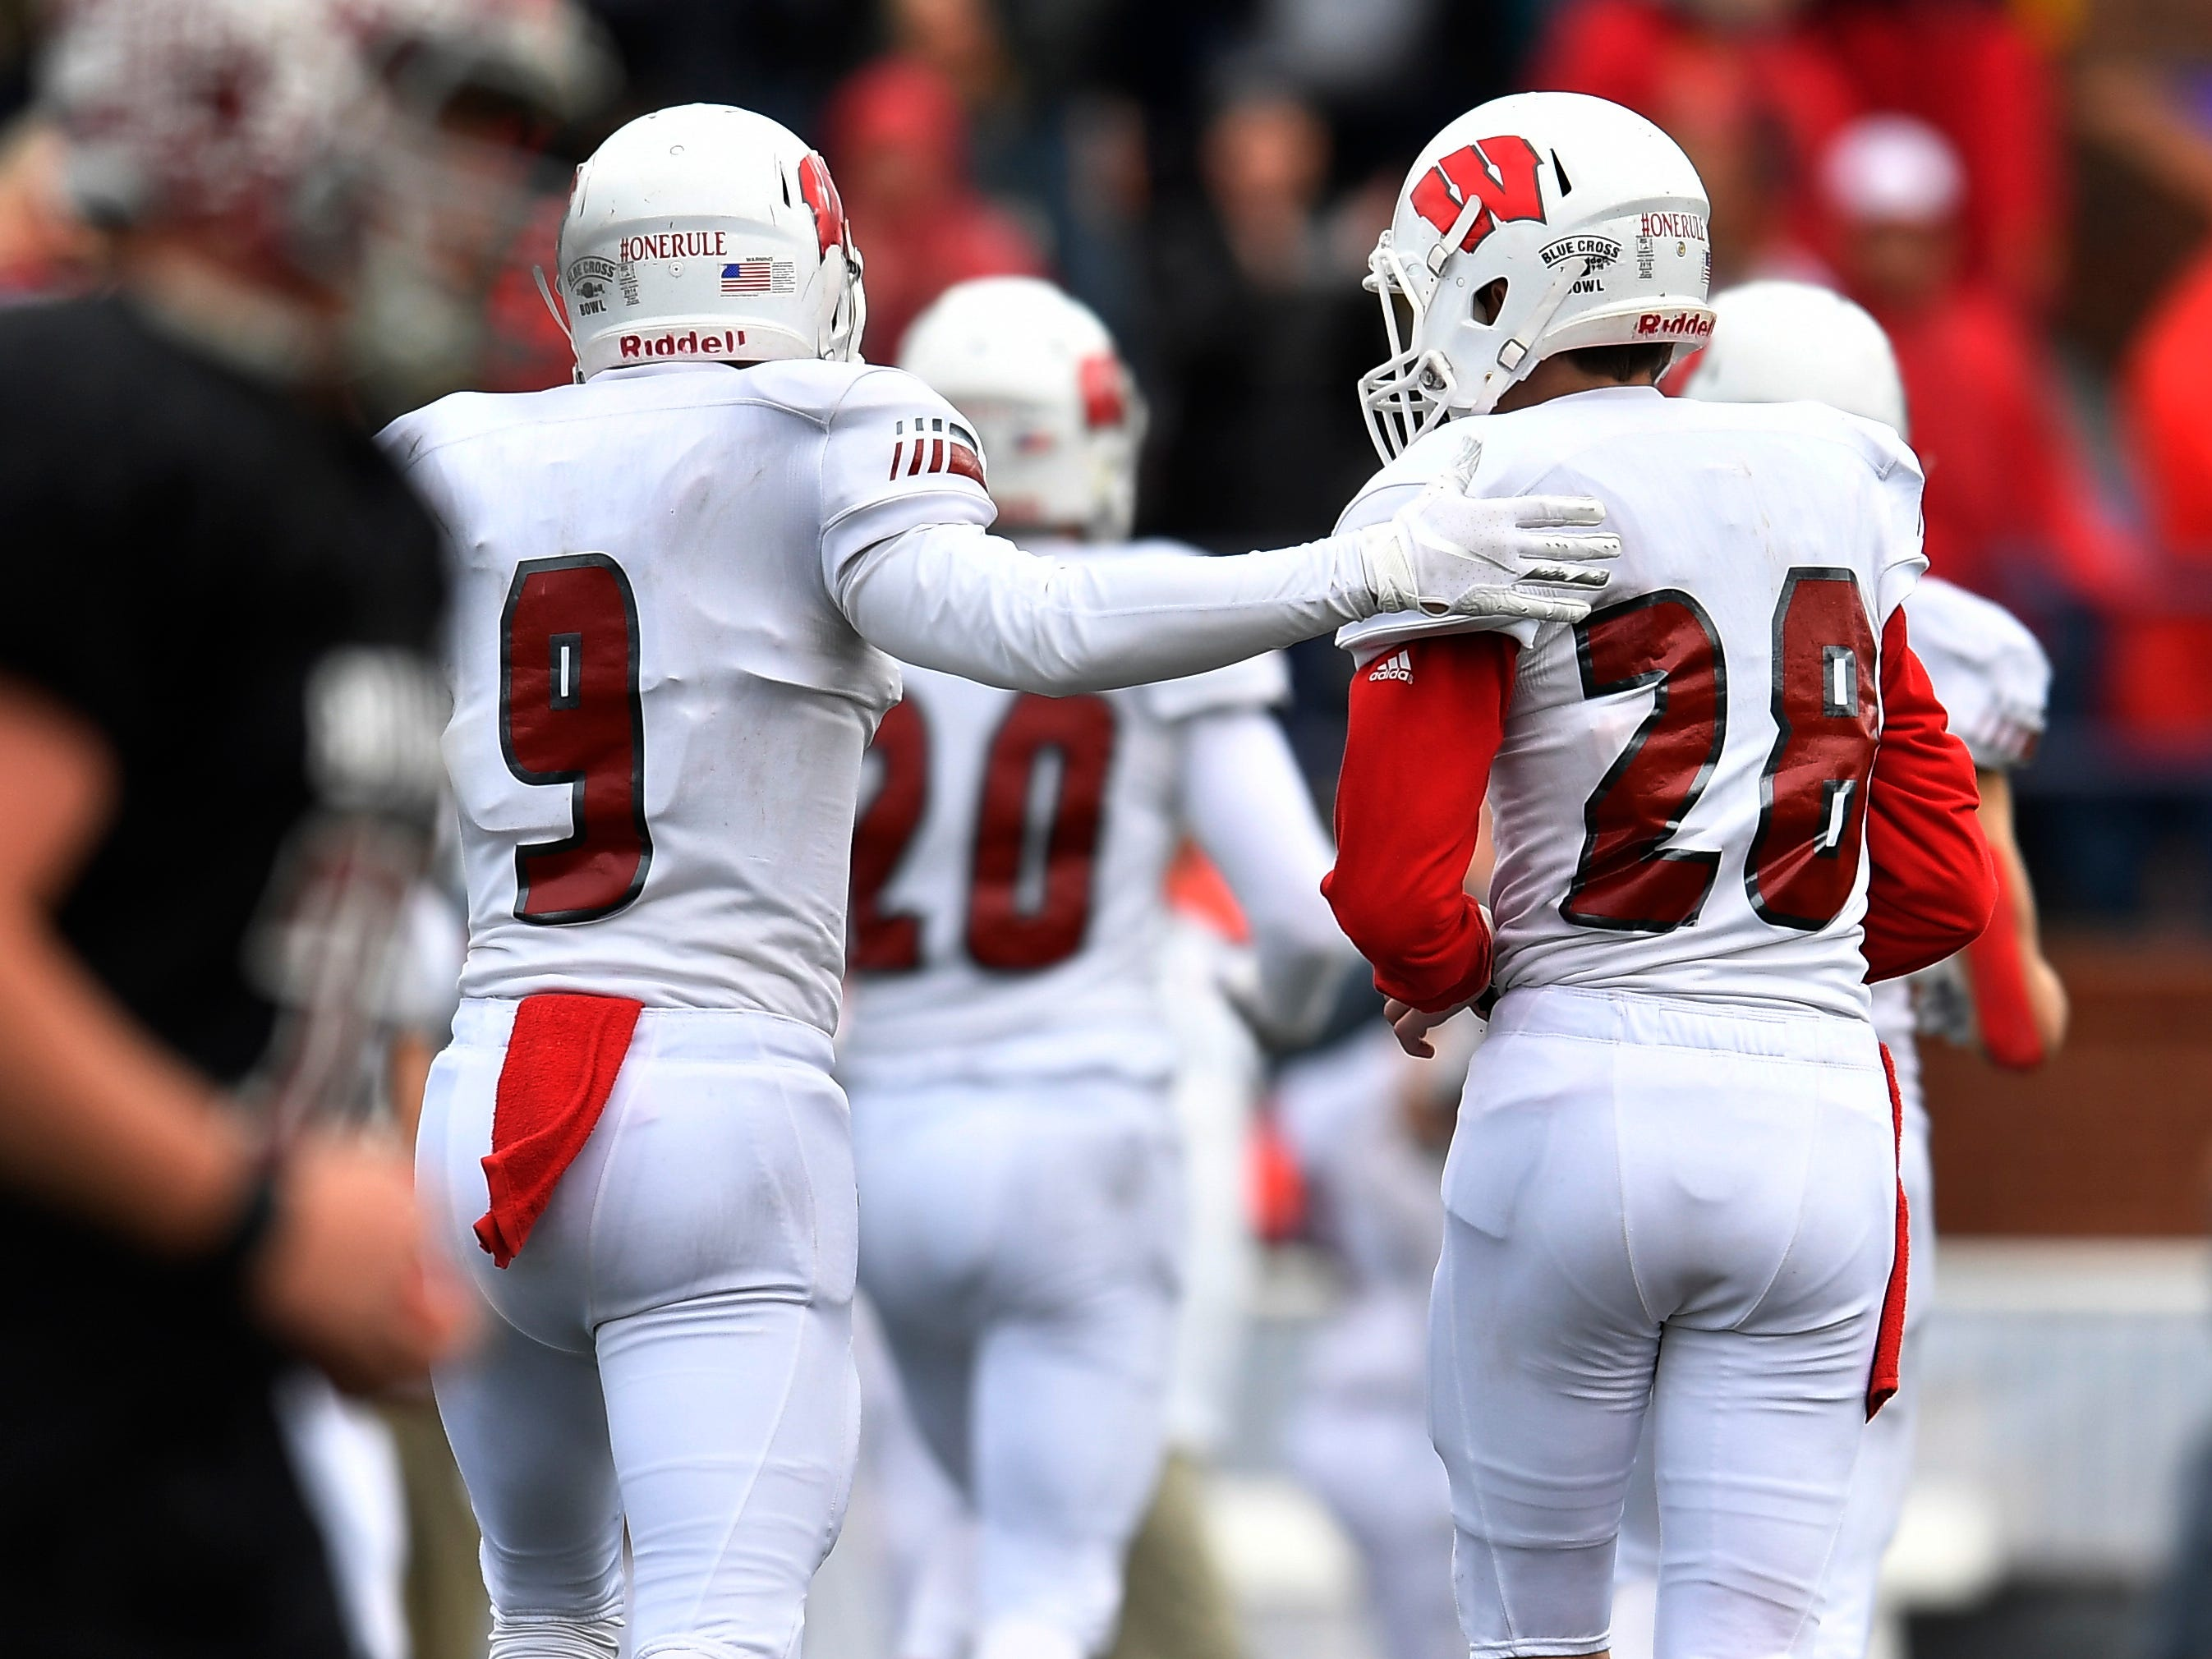 Whitwell place kicker Evan Nunley (28) is congratulated by Whitwell running back Cole Burns (9) after his successful point-after kick in the fourth quarter at the Class I-A BlueCross Bowl state championship at Tennessee Tech's Tucker Stadium in Cookeville, Tenn., on Saturday, Dec. 1, 2018.